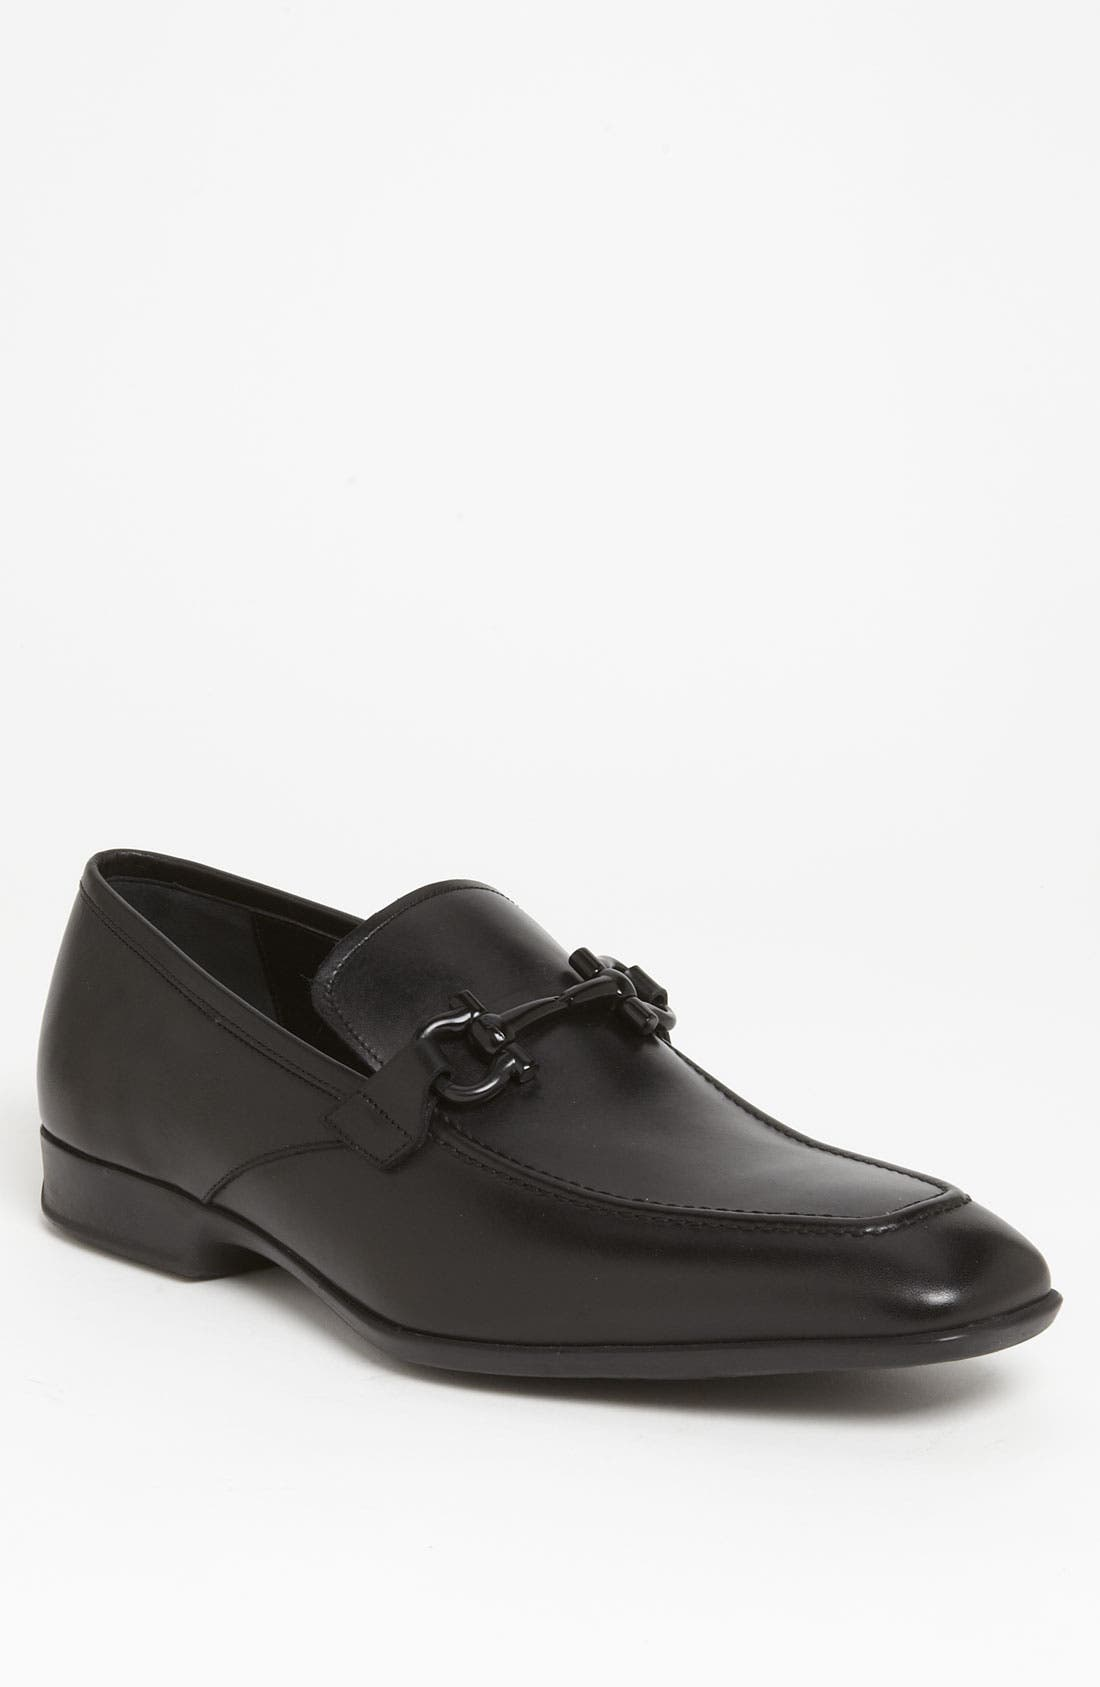 Alternate Image 1 Selected - Salvatore Ferragamo 'Gregory' Loafer (Men)